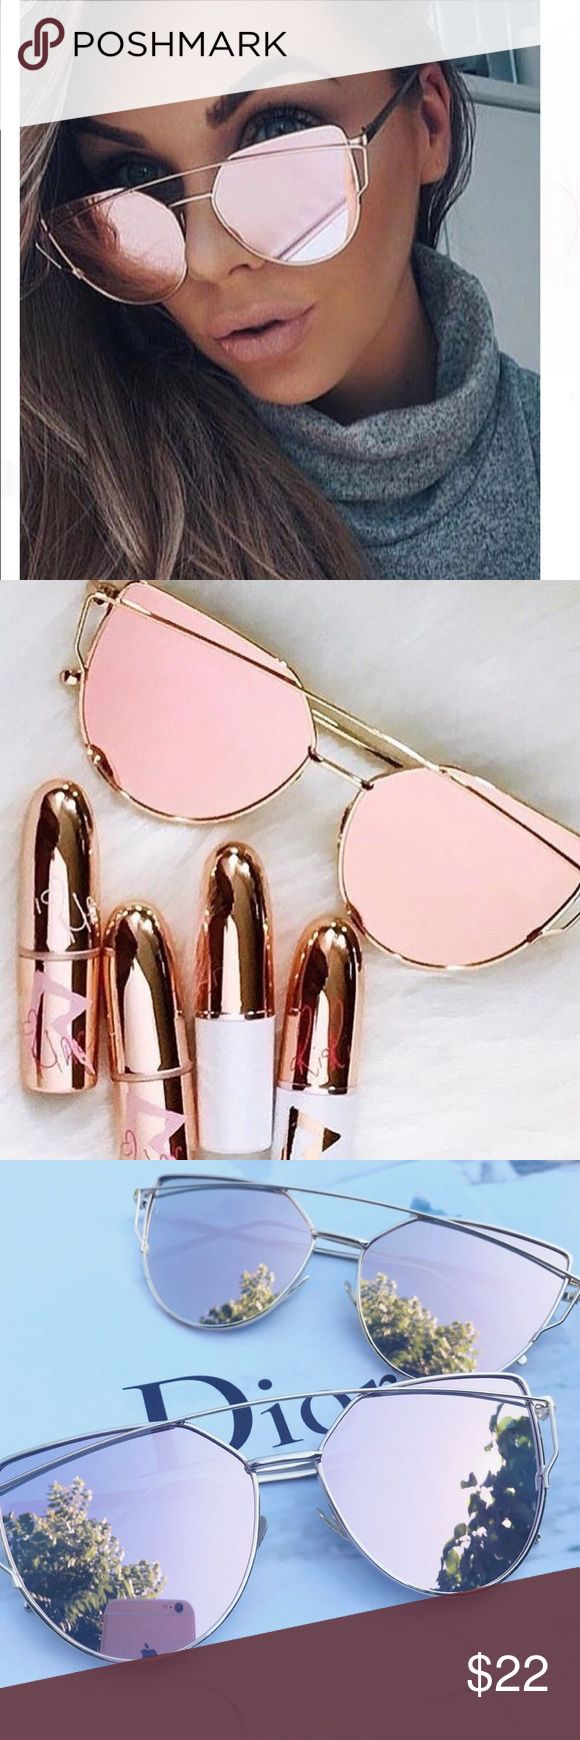 •JUST IN• Rose gold mirror sunglasses Best seller! Rose gold mirrored cat eye sunglasses with UV protection.  trades Accessories Sunglasses